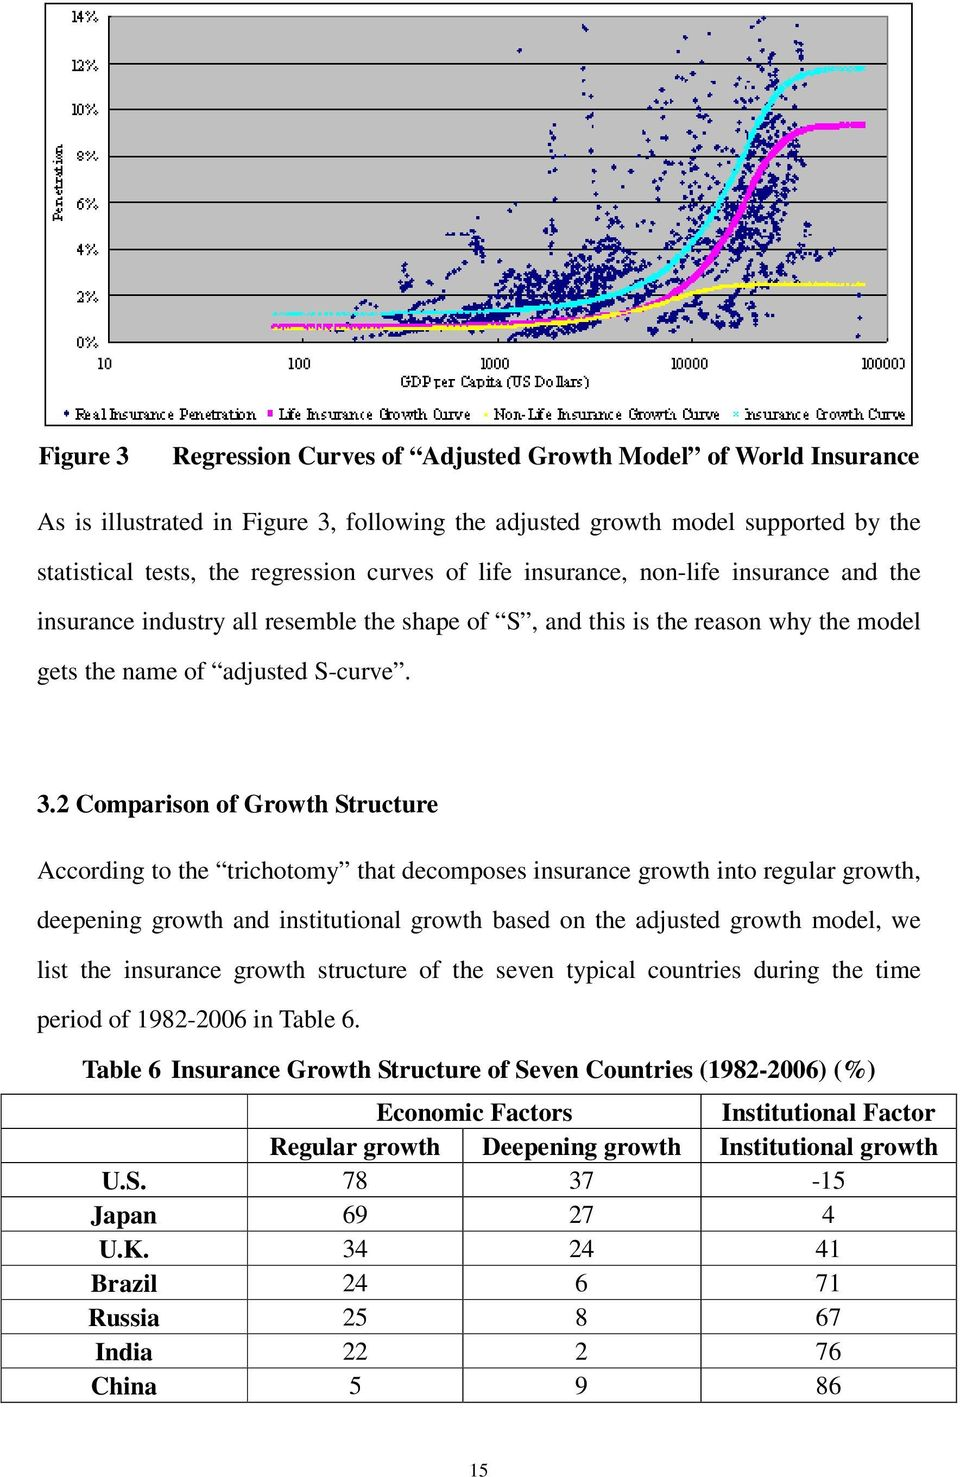 2 Comparison of Growth Structure According to the trichotomy that decomposes insurance growth into regular growth, deepening growth and institutional growth based on the adjusted growth model, we